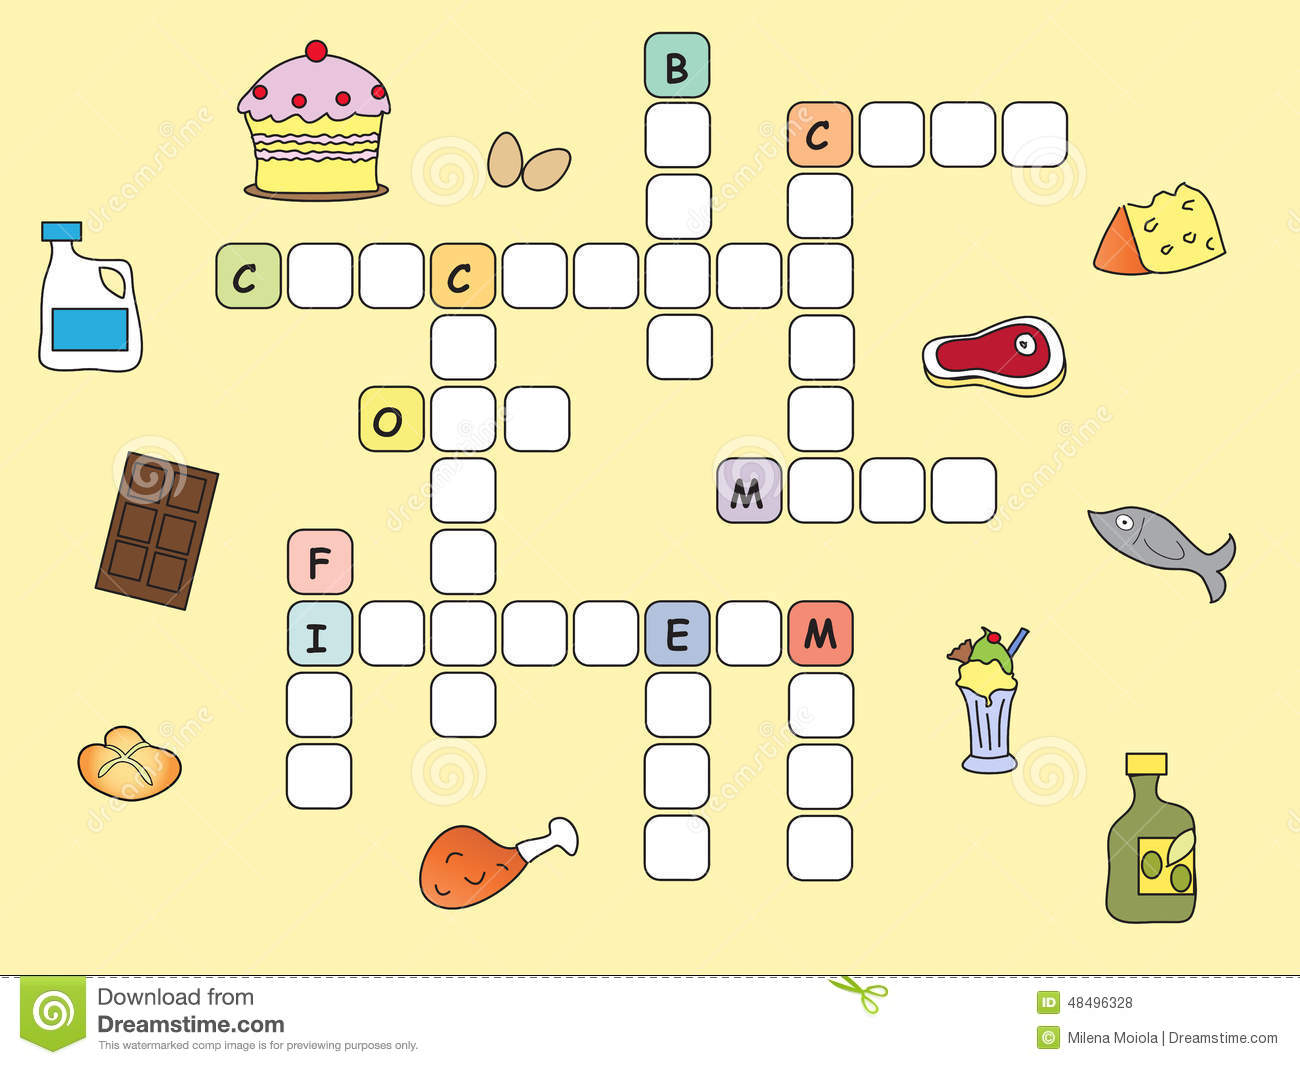 Crossword Game For Children Easy With Food Royalty Free Stock Photos